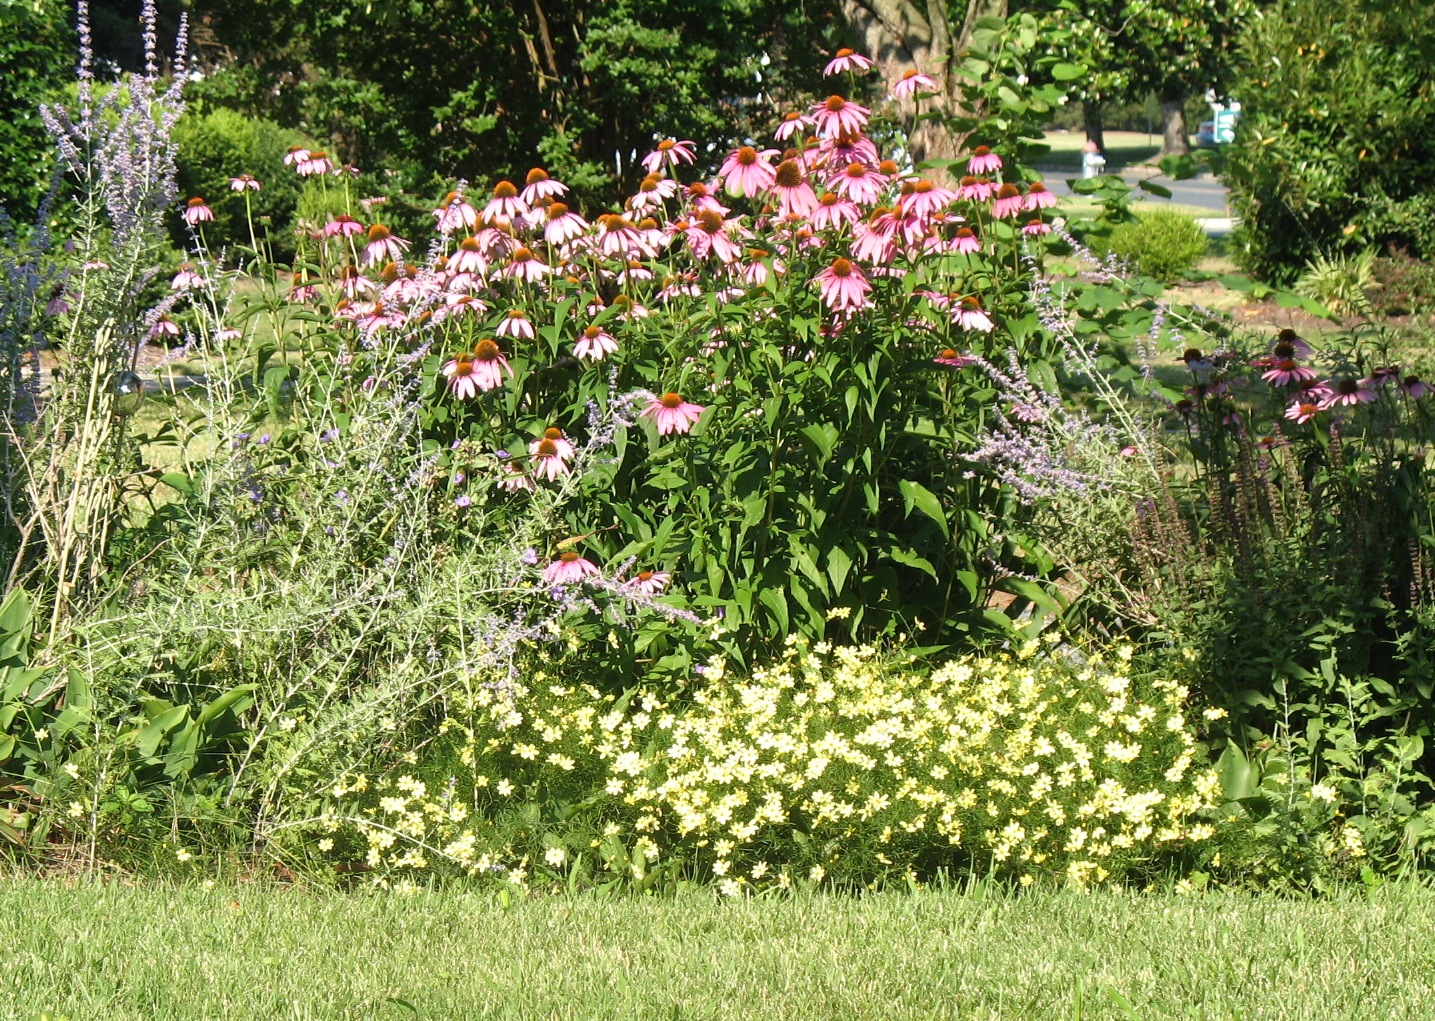 Views from the Garden Design a perennial flower bed for blooms